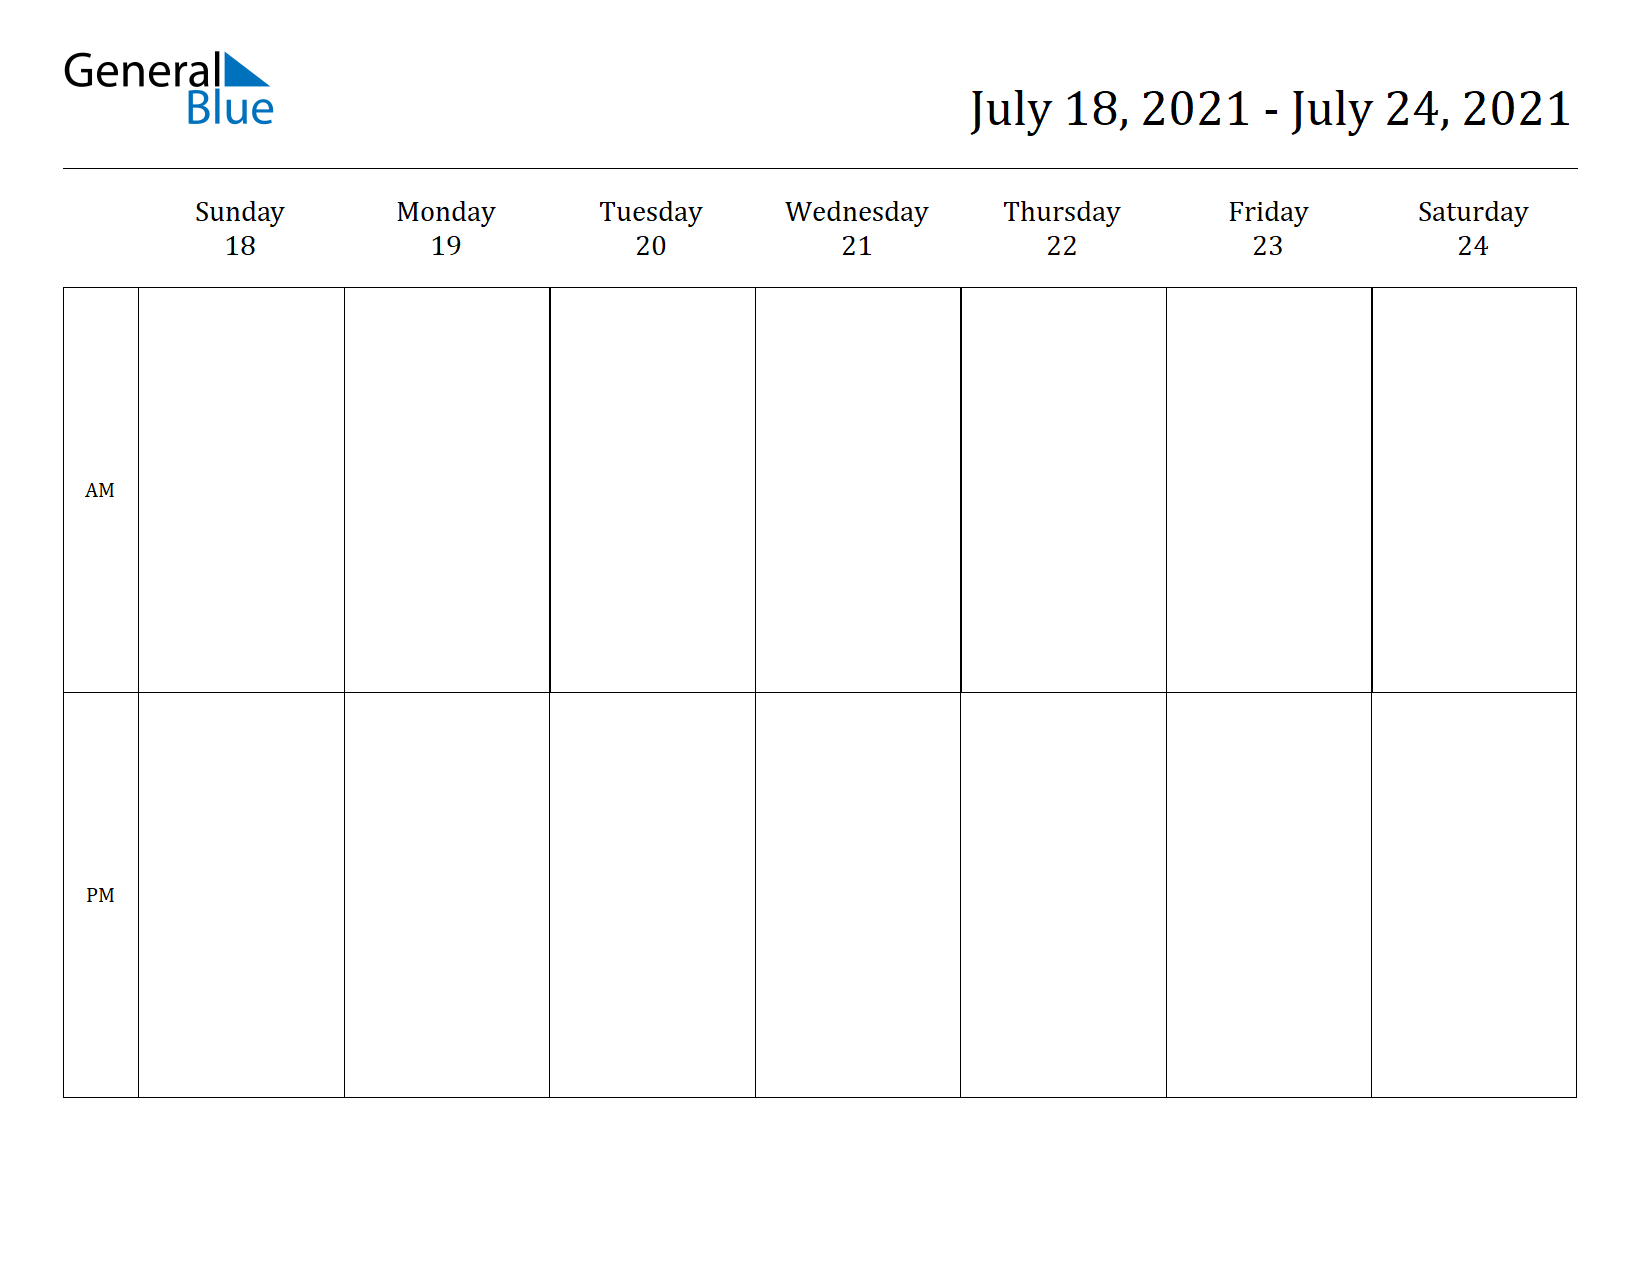 Weekly Calendar for Jul 18, 2021 to Jul 24, 2021